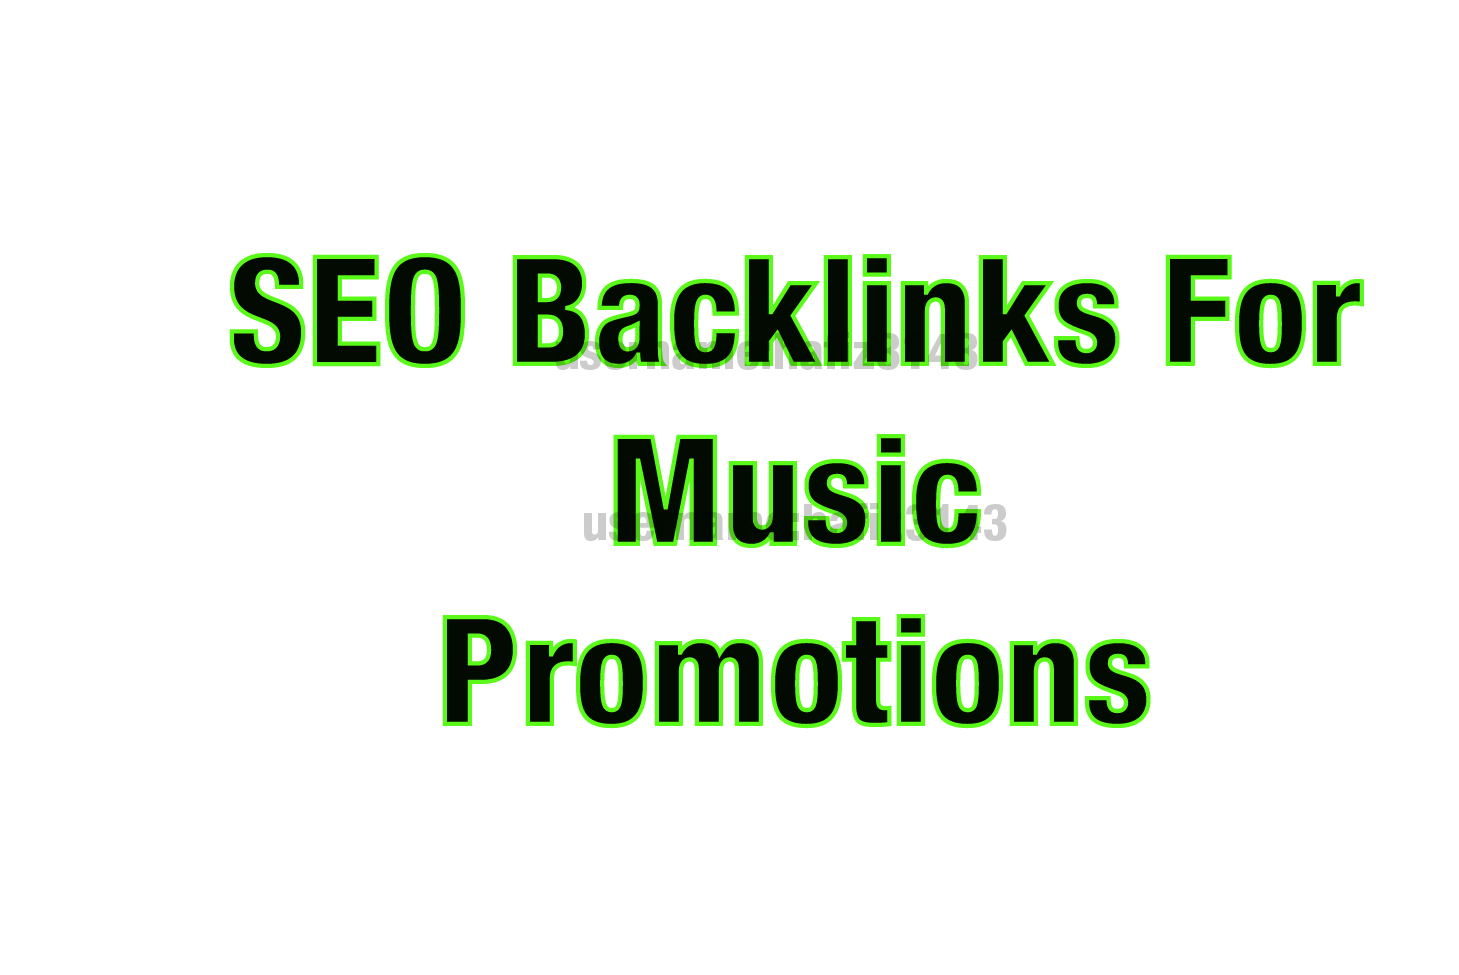 I will Provide High Quality SEO Backlinks For Music Promotions